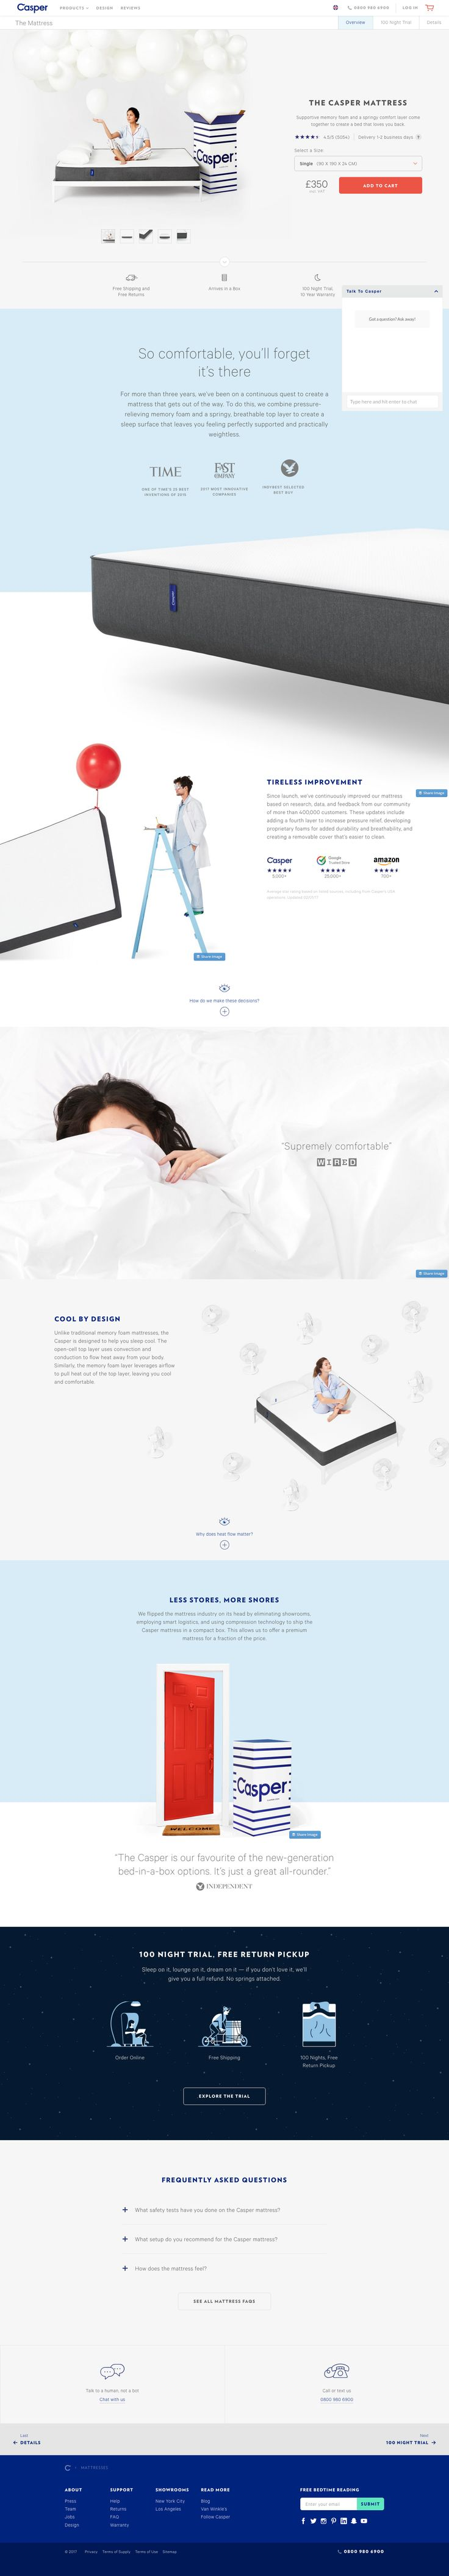 Casper Mattresses - Product Page